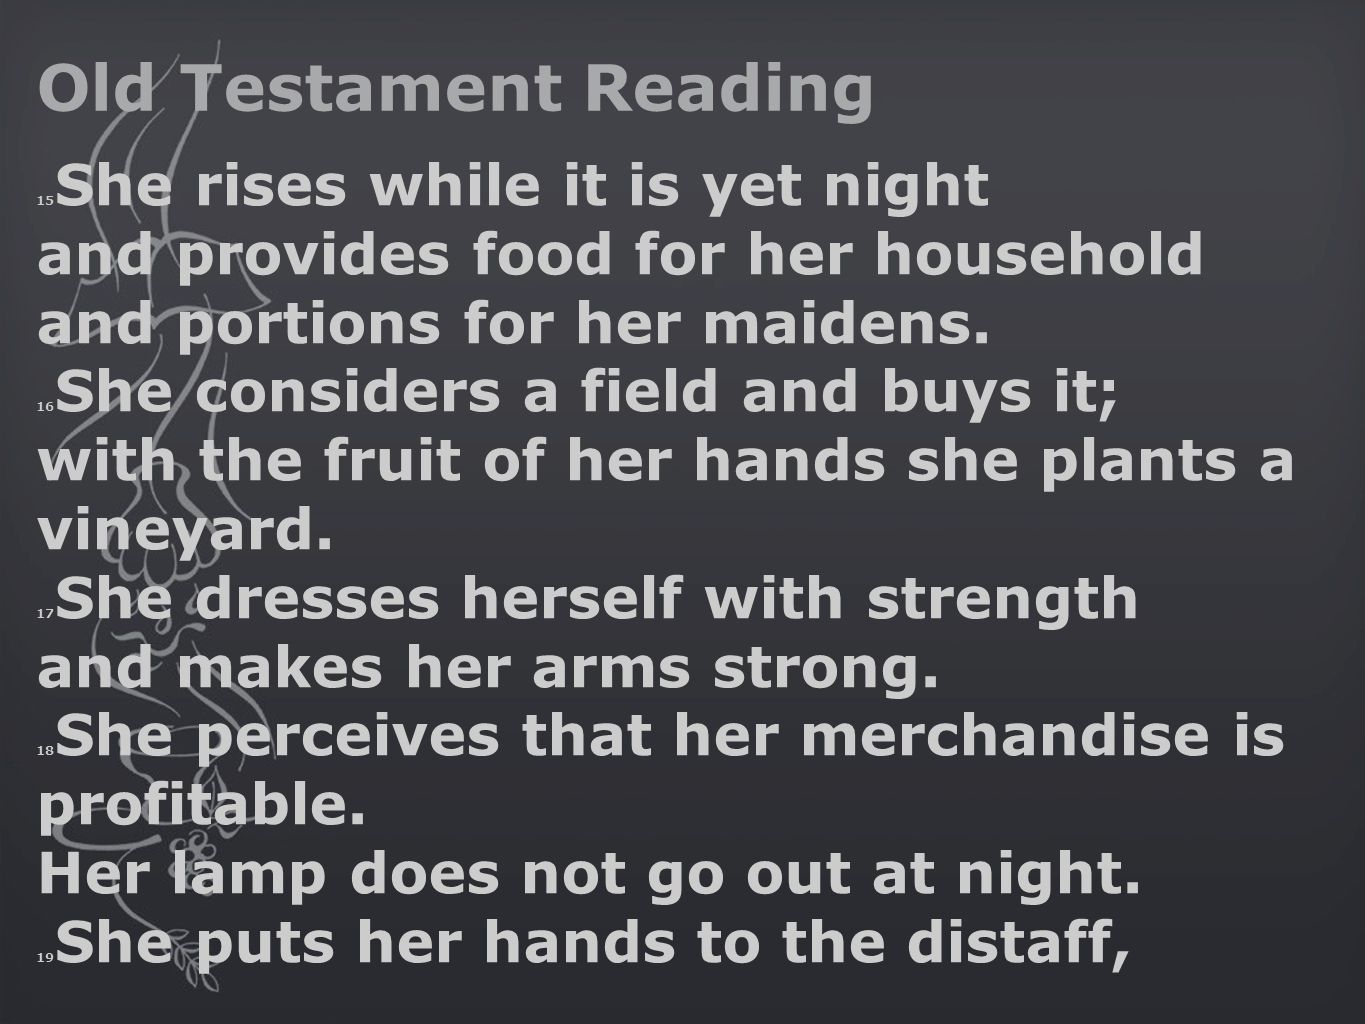 Old Testament Reading 15 She rises while it is yet night and provides food for her household and portions for her maidens.